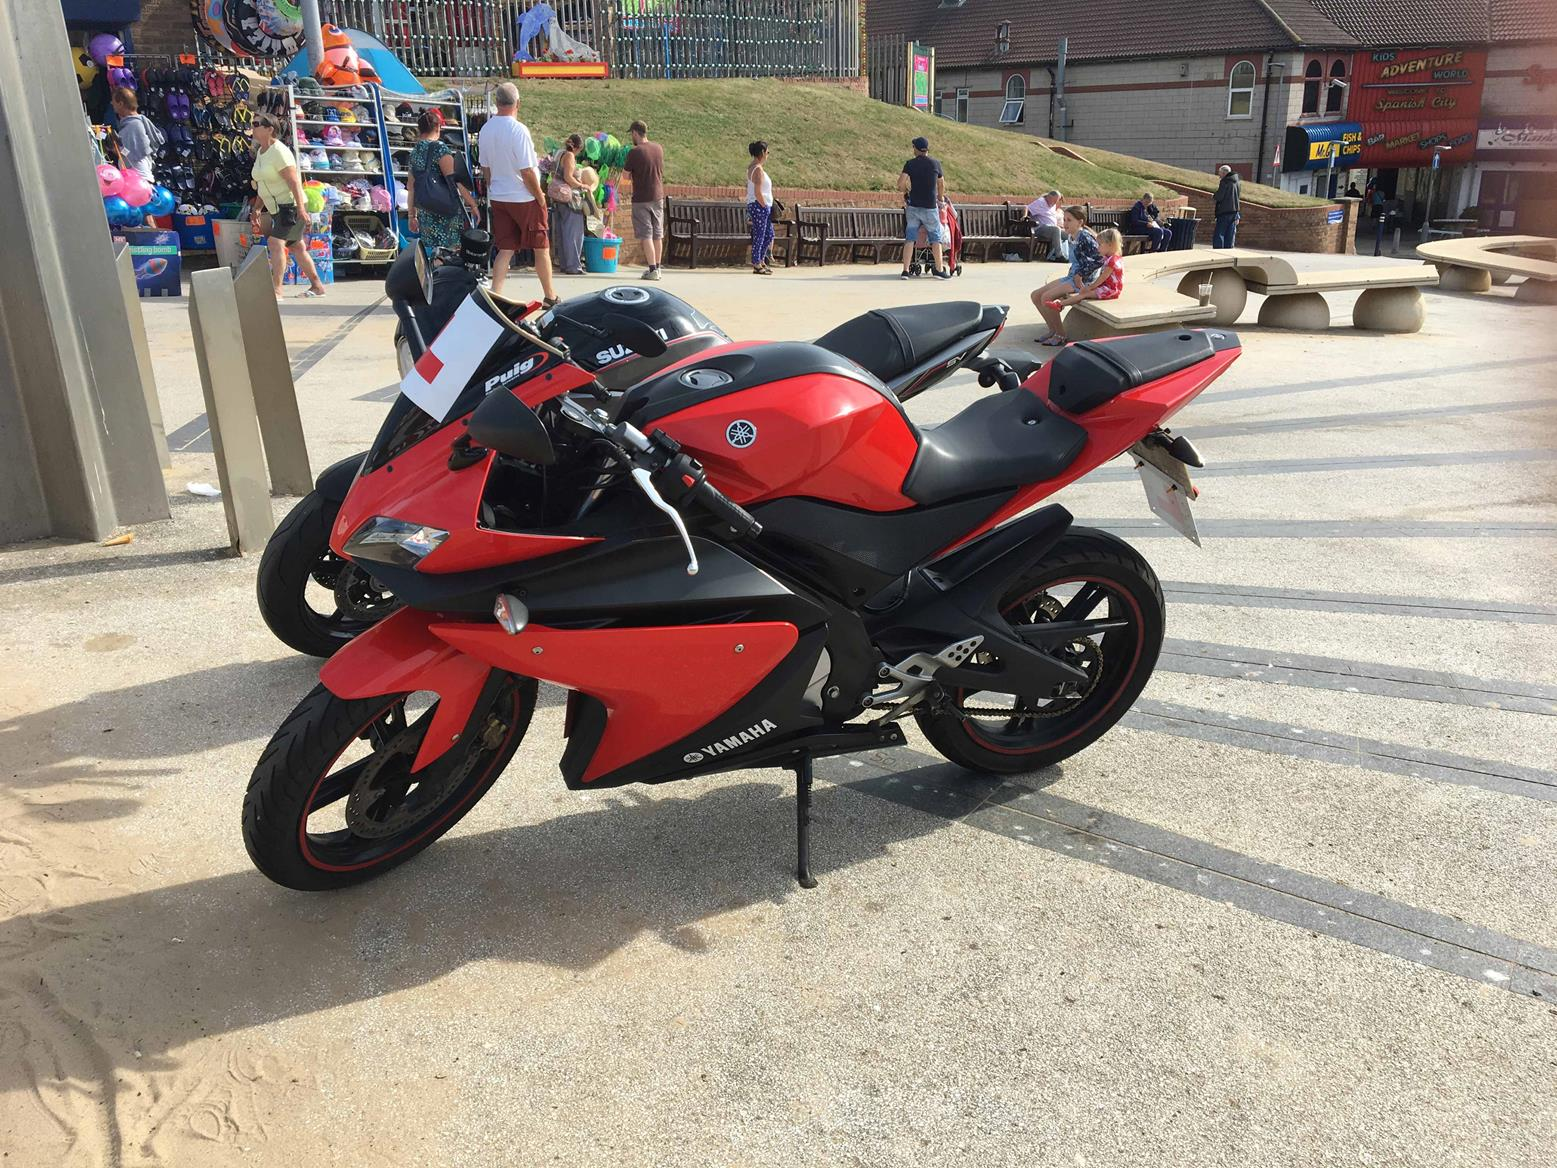 The Yamaha heads for a ride with the #MCNFleet Suzuki SV650X